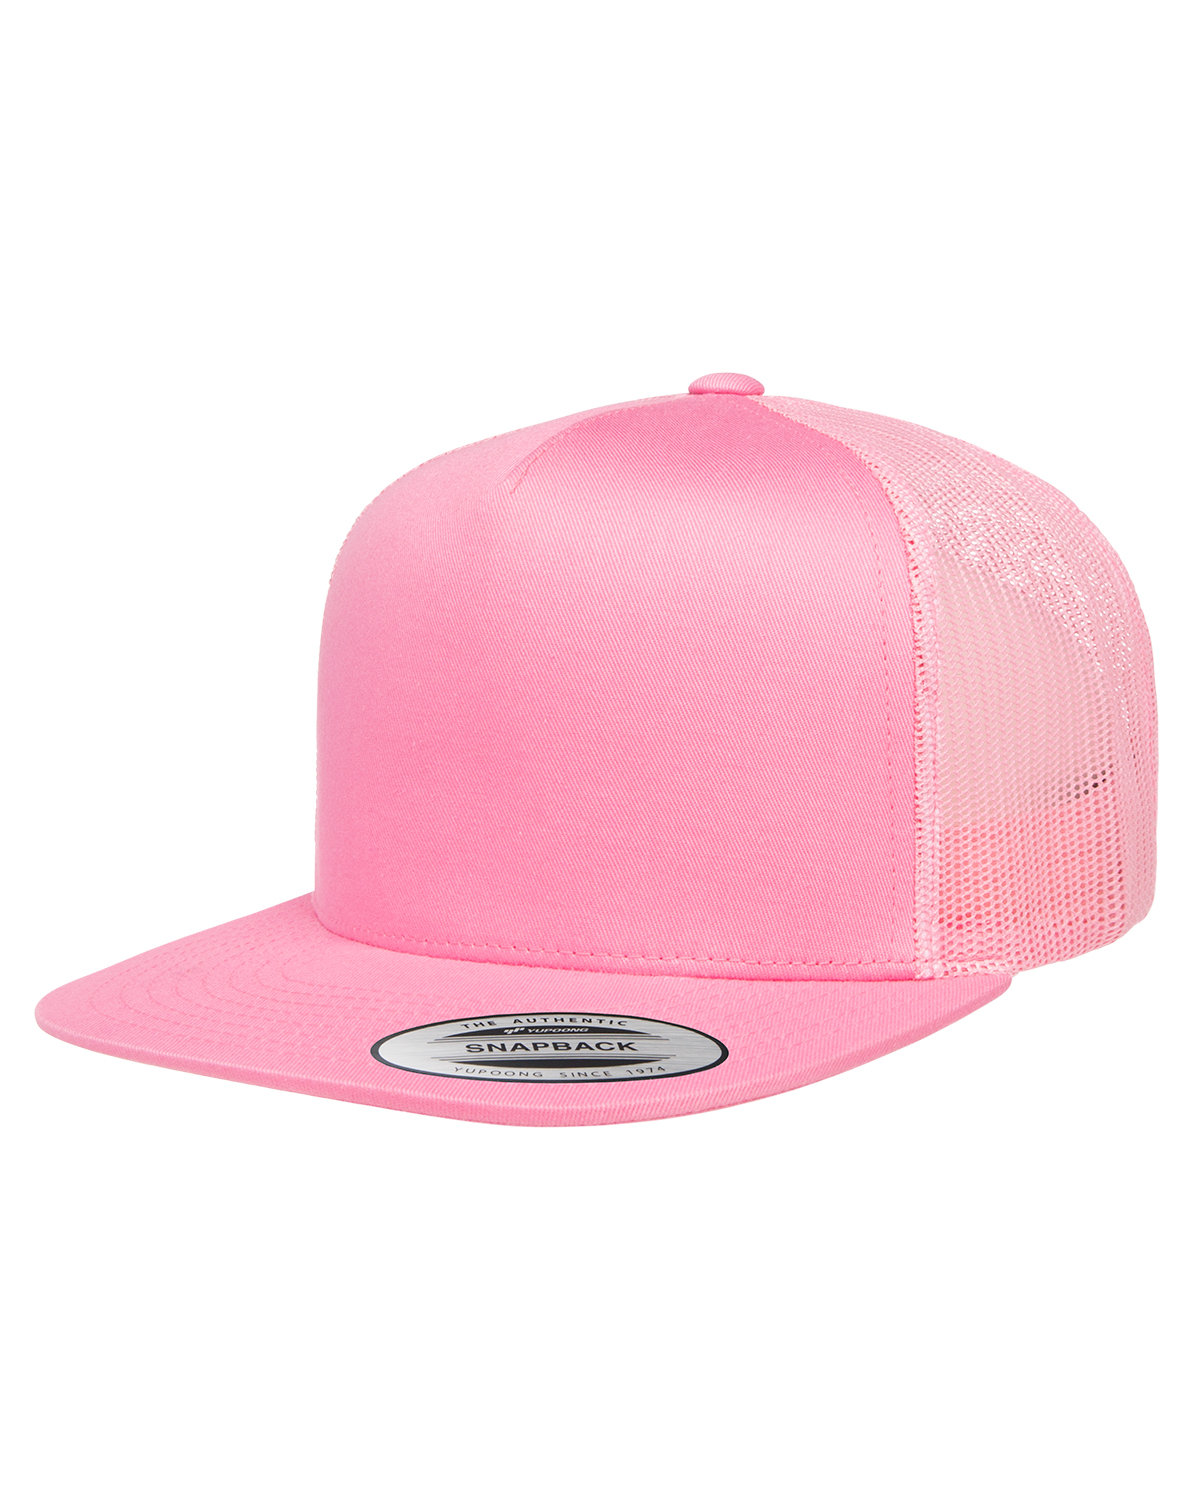 Yupoong Adult 5-Panel Classic Trucker Cap PINK